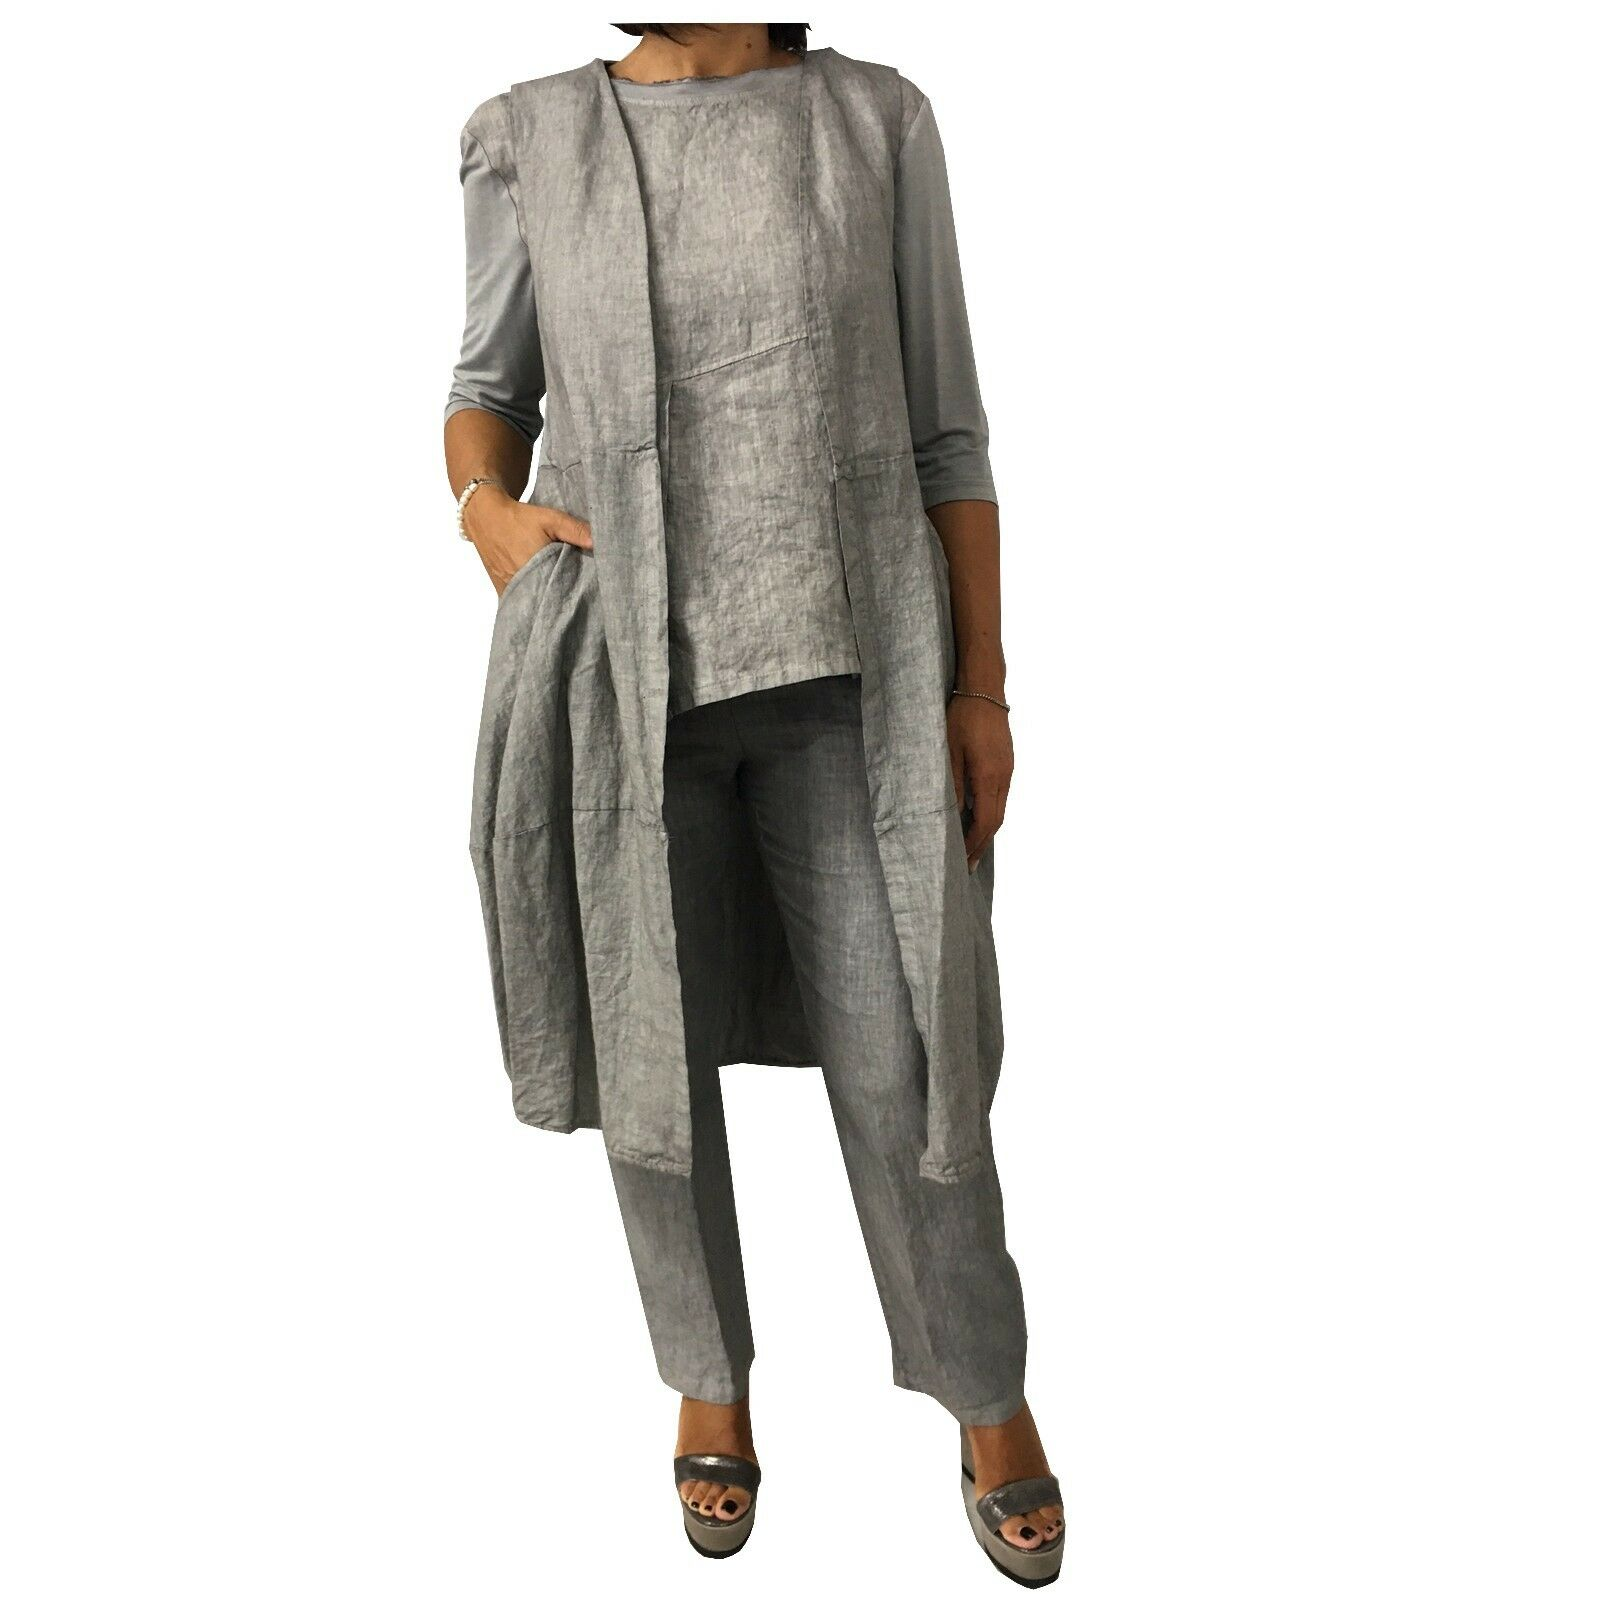 MYLAB woman vest grey used MADE IN ITALY 100% linen - 95% viscose 5% elastane